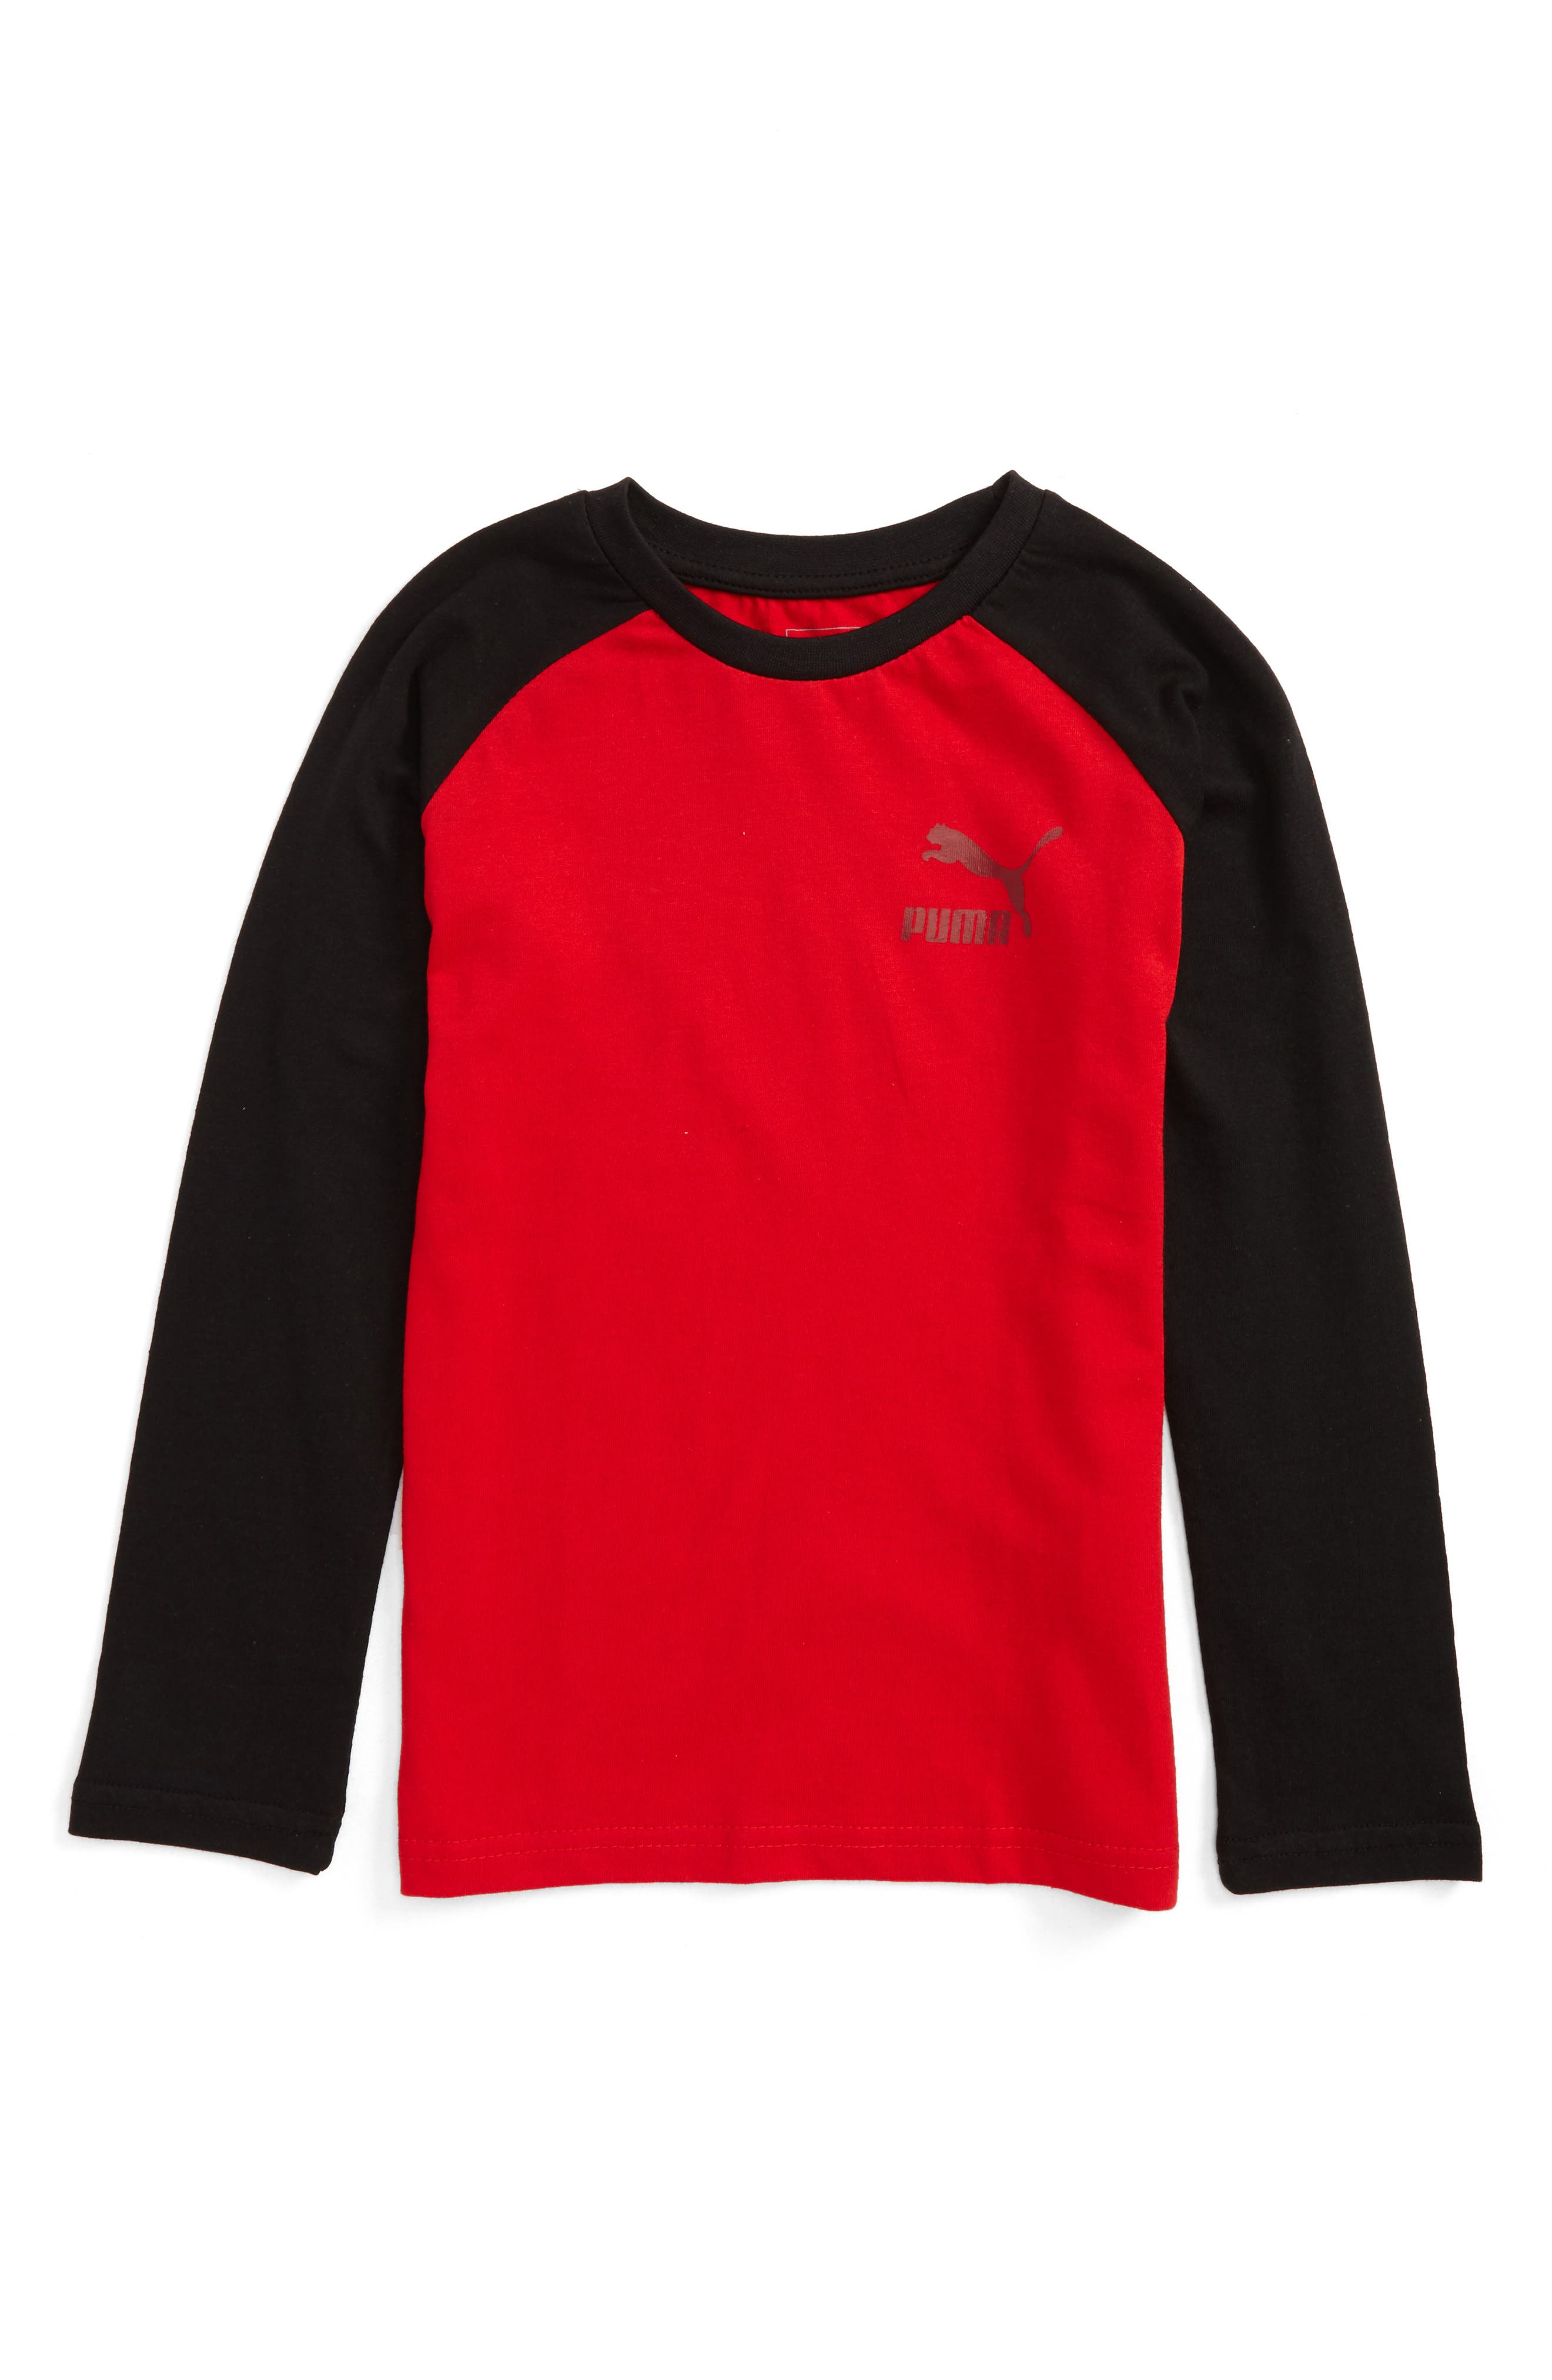 PUMA Logo Raglan Sleeve T-Shirt (Little Boys)